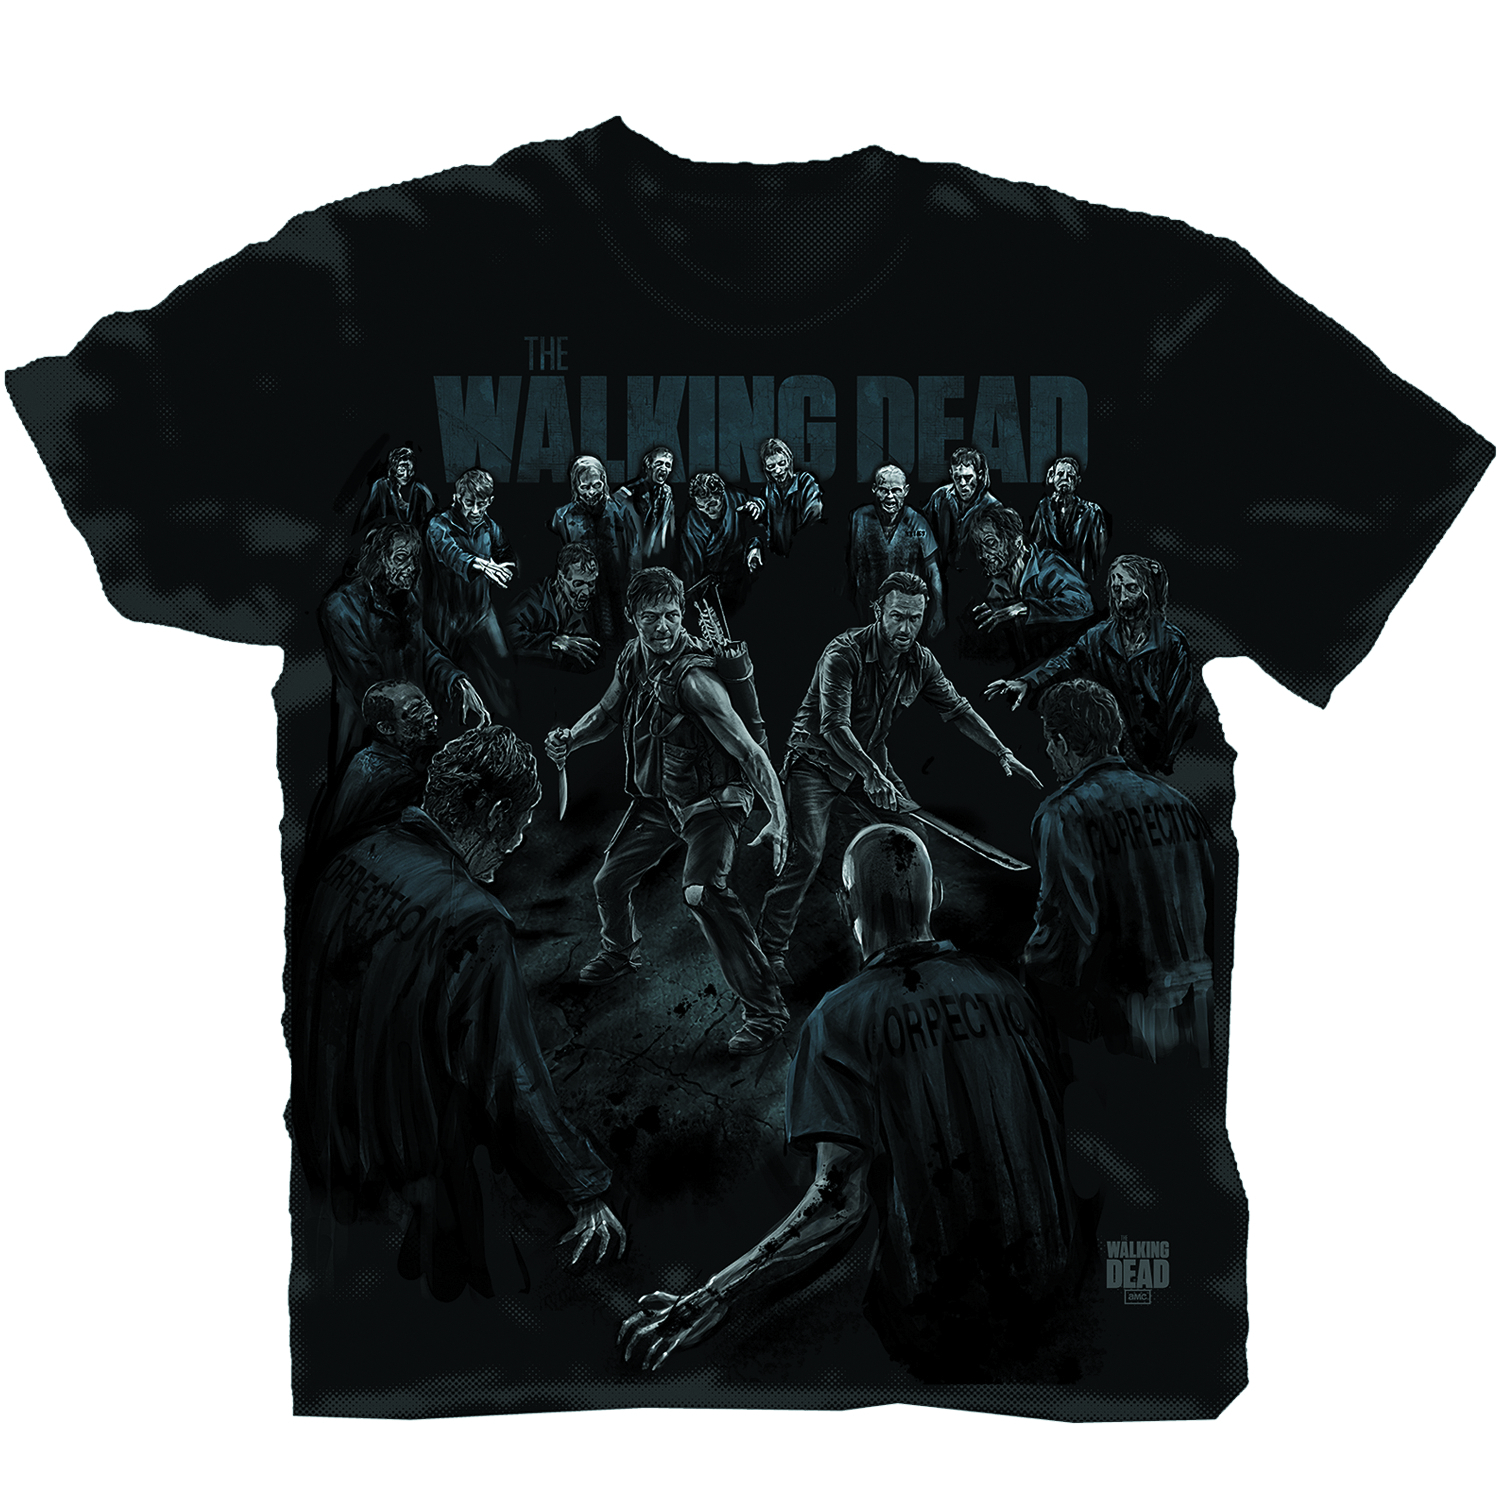 WALKING DEAD PROTECT THE GROUP BLK T/S XXL